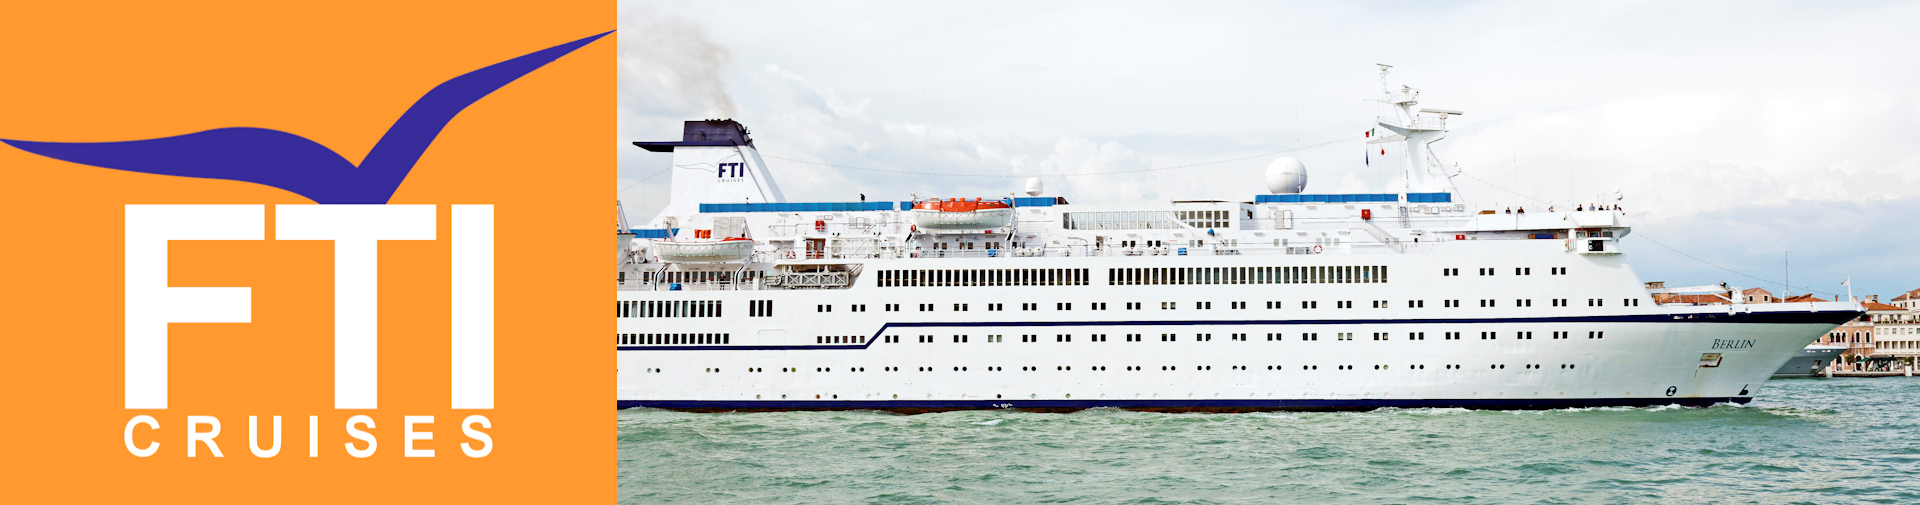 FTI Cruises - MS Berlin